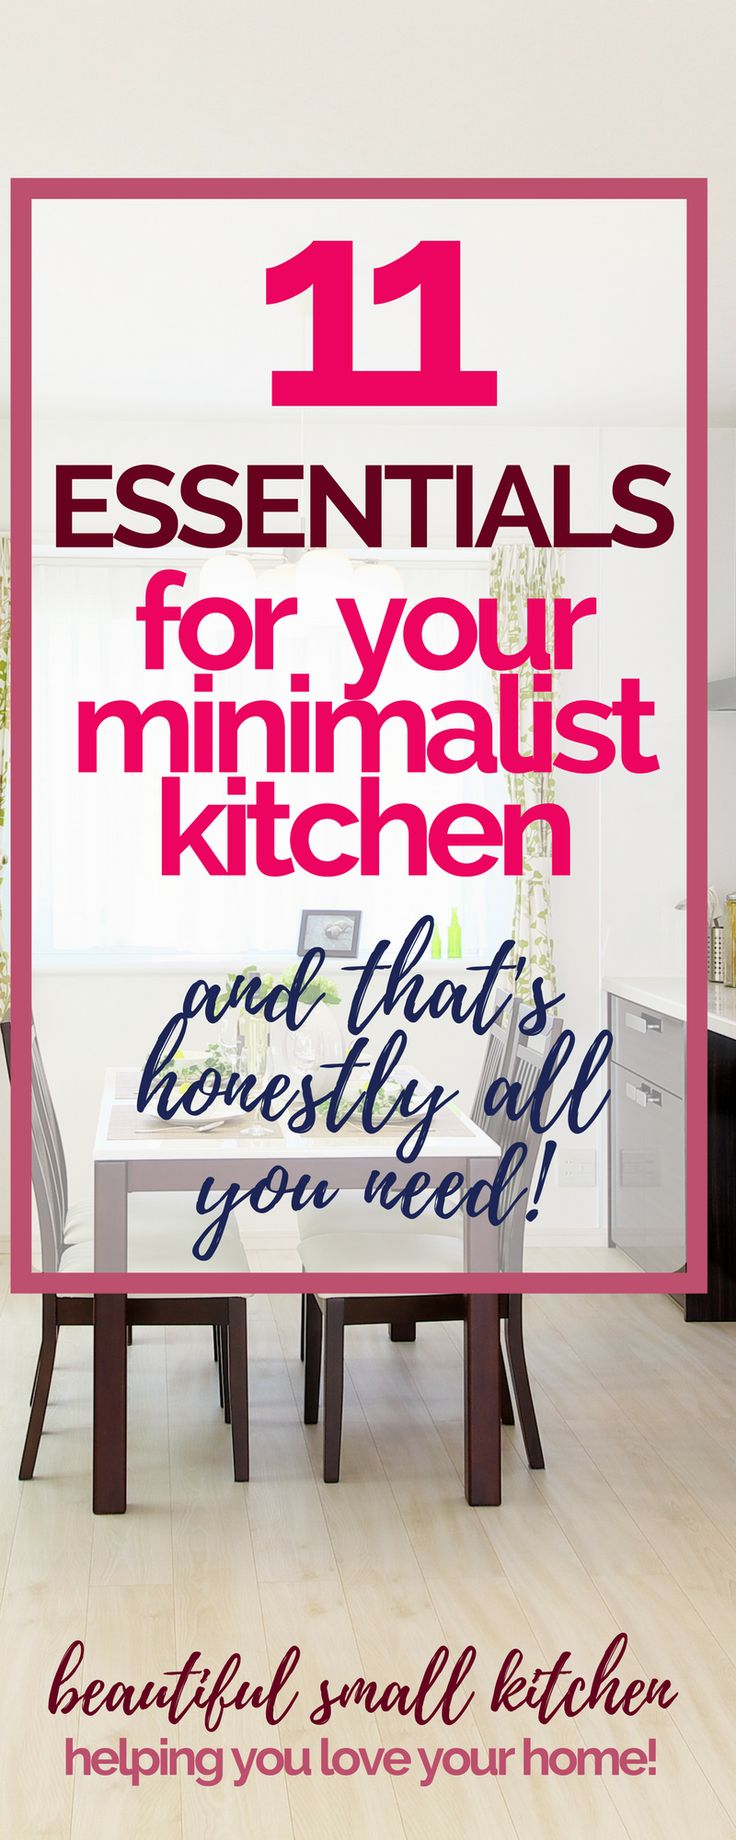 A minimalist kitchen? What you REALLY need to cook for your family. Here's a comprehensive list of essential kitchen items from a real life family kitchen! #minimalistkitchen #minimalism #minimalistfamily